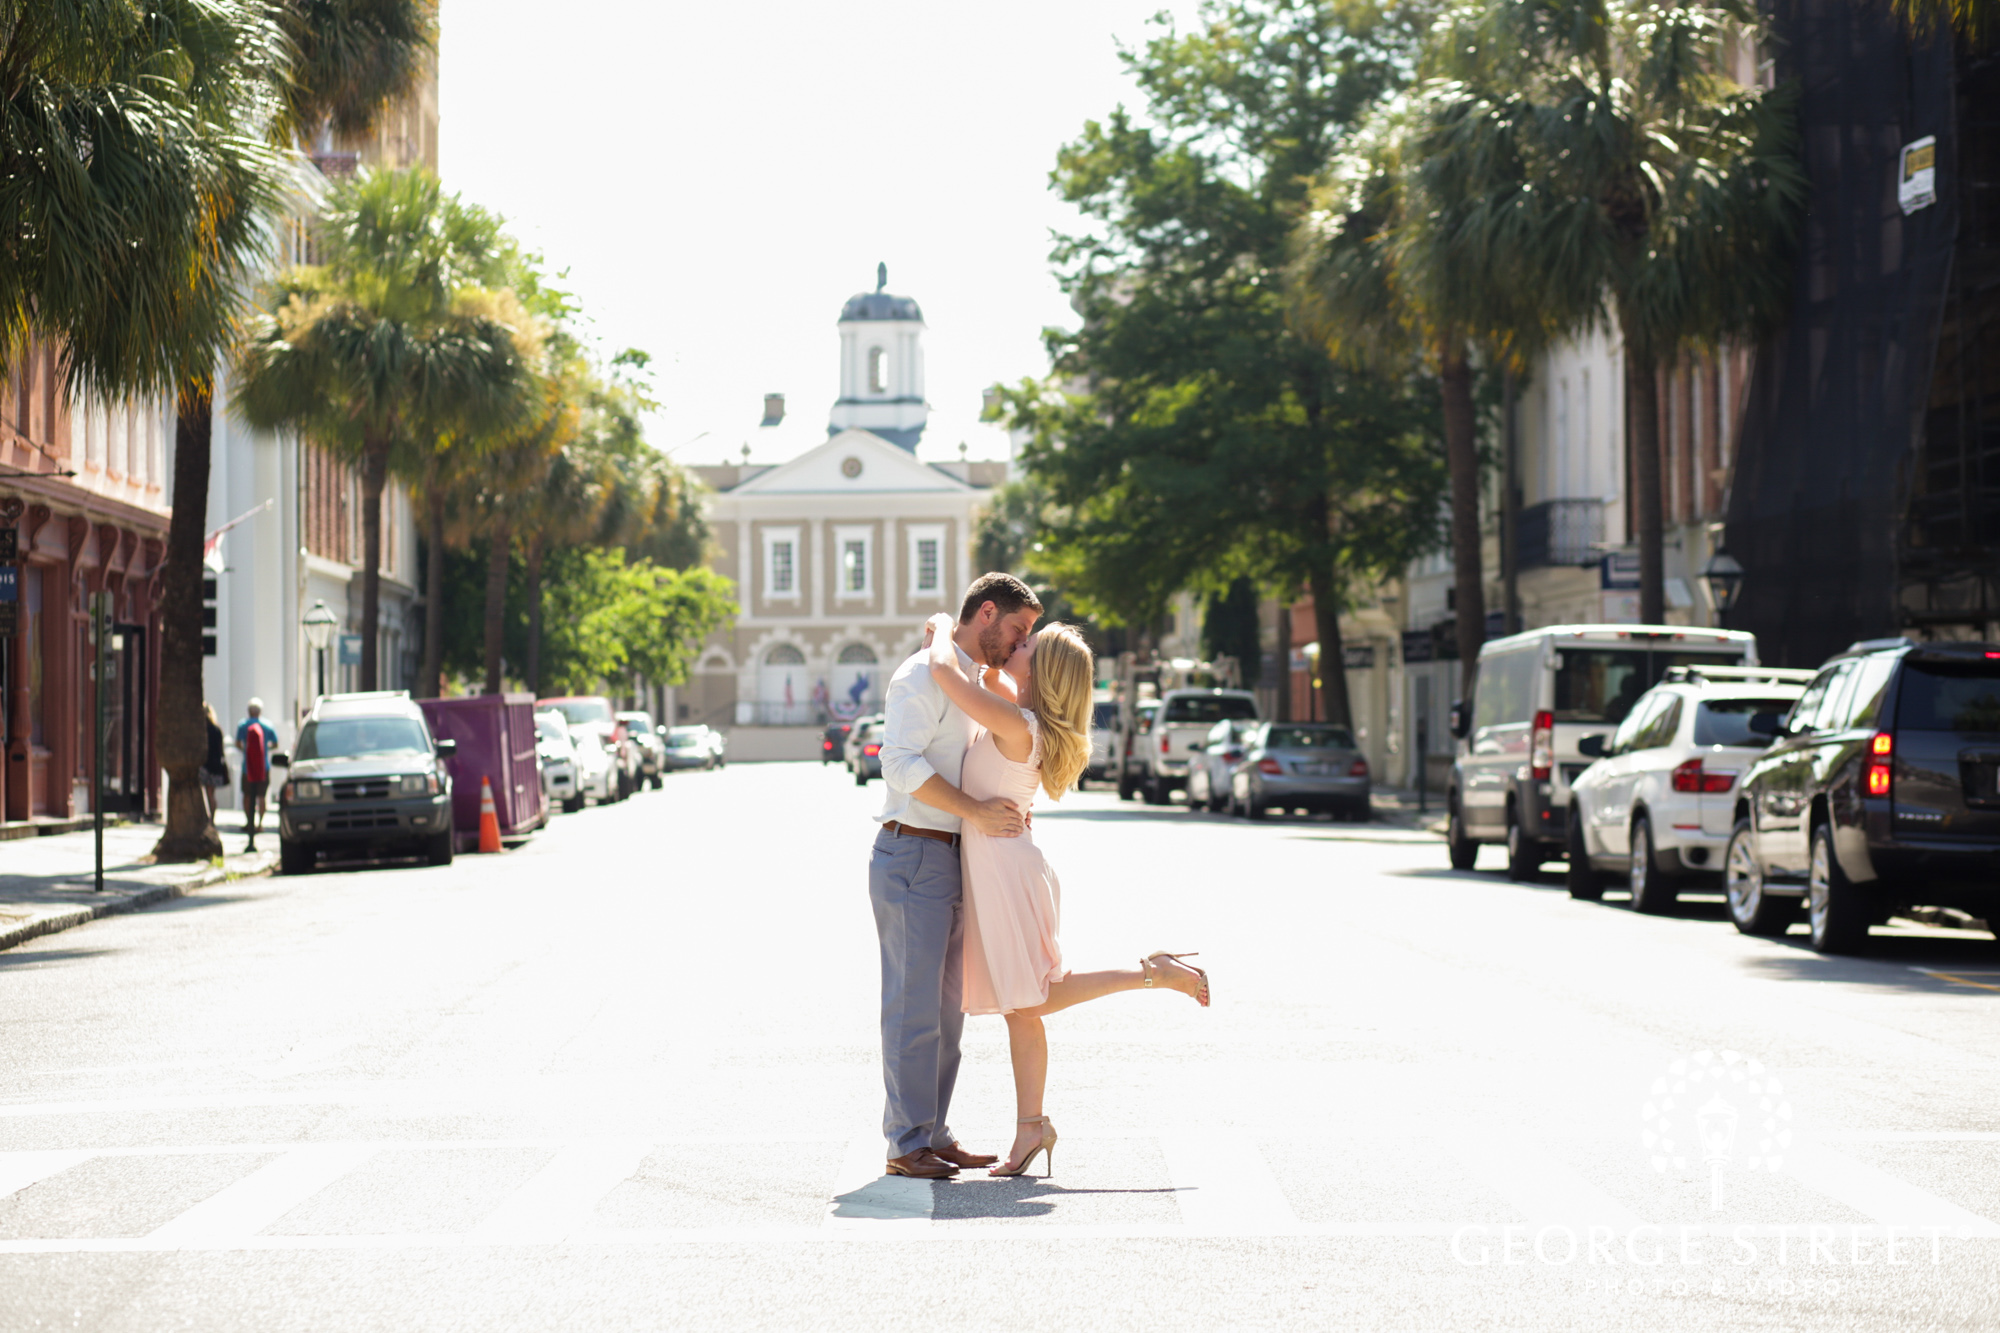 scenic charleston historic district sunny outdoor engagement portraits